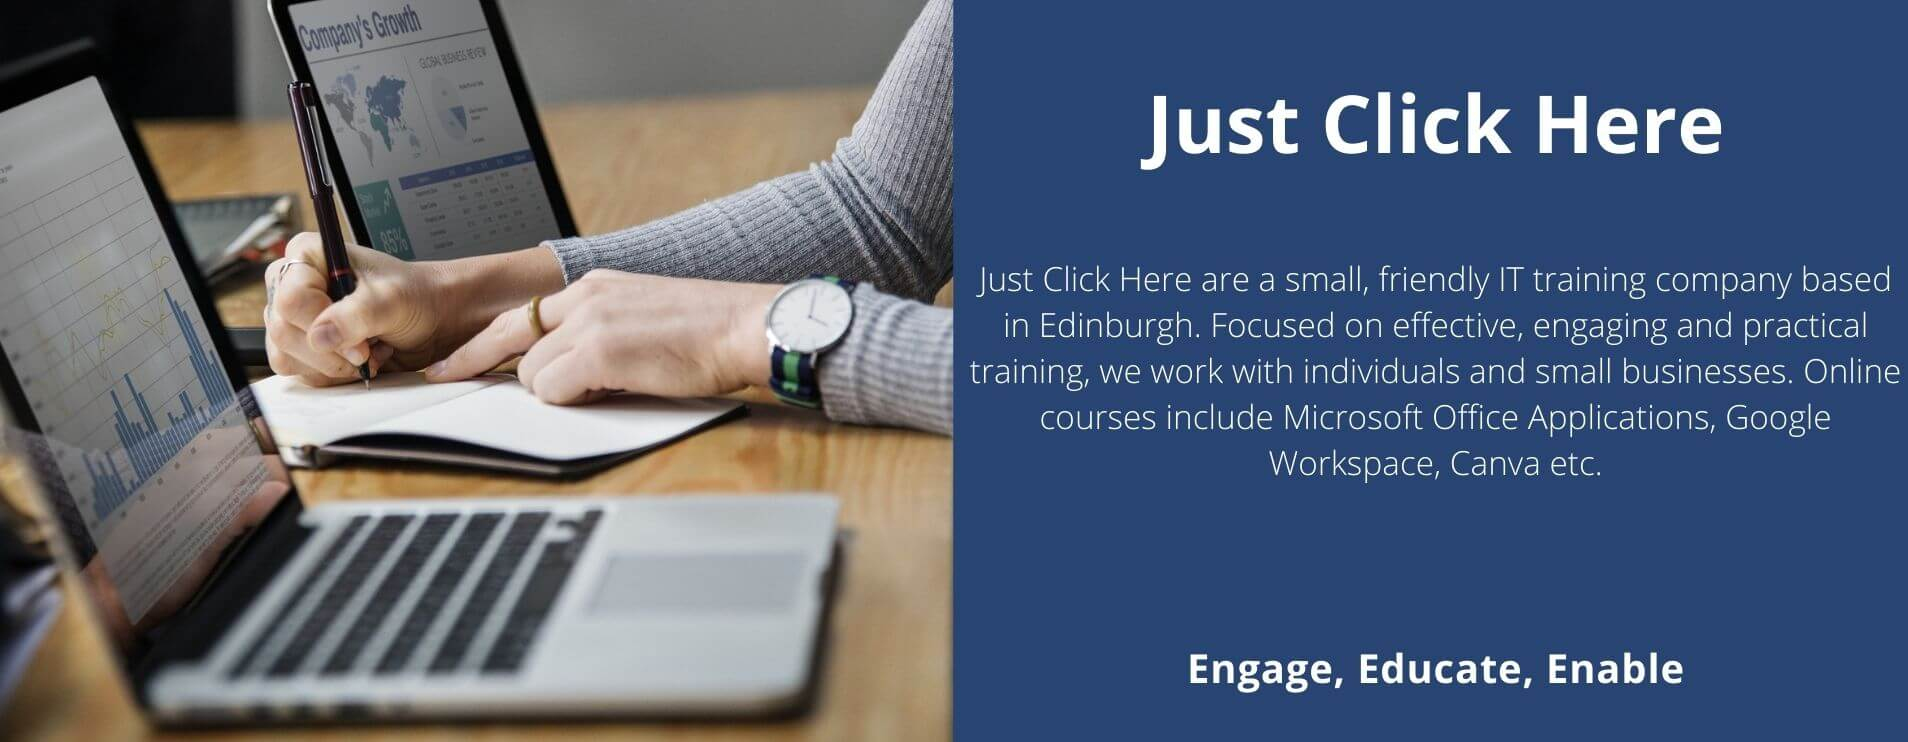 Just Click Here website banner. Describes Just Click Here as a small friendly IT training company based in Edinburgh. Focused on effective, engaging and practical training, we work with individuals and small businesses. Online courses include Microsoft Office Applications, Google Workspace, Canva etc.